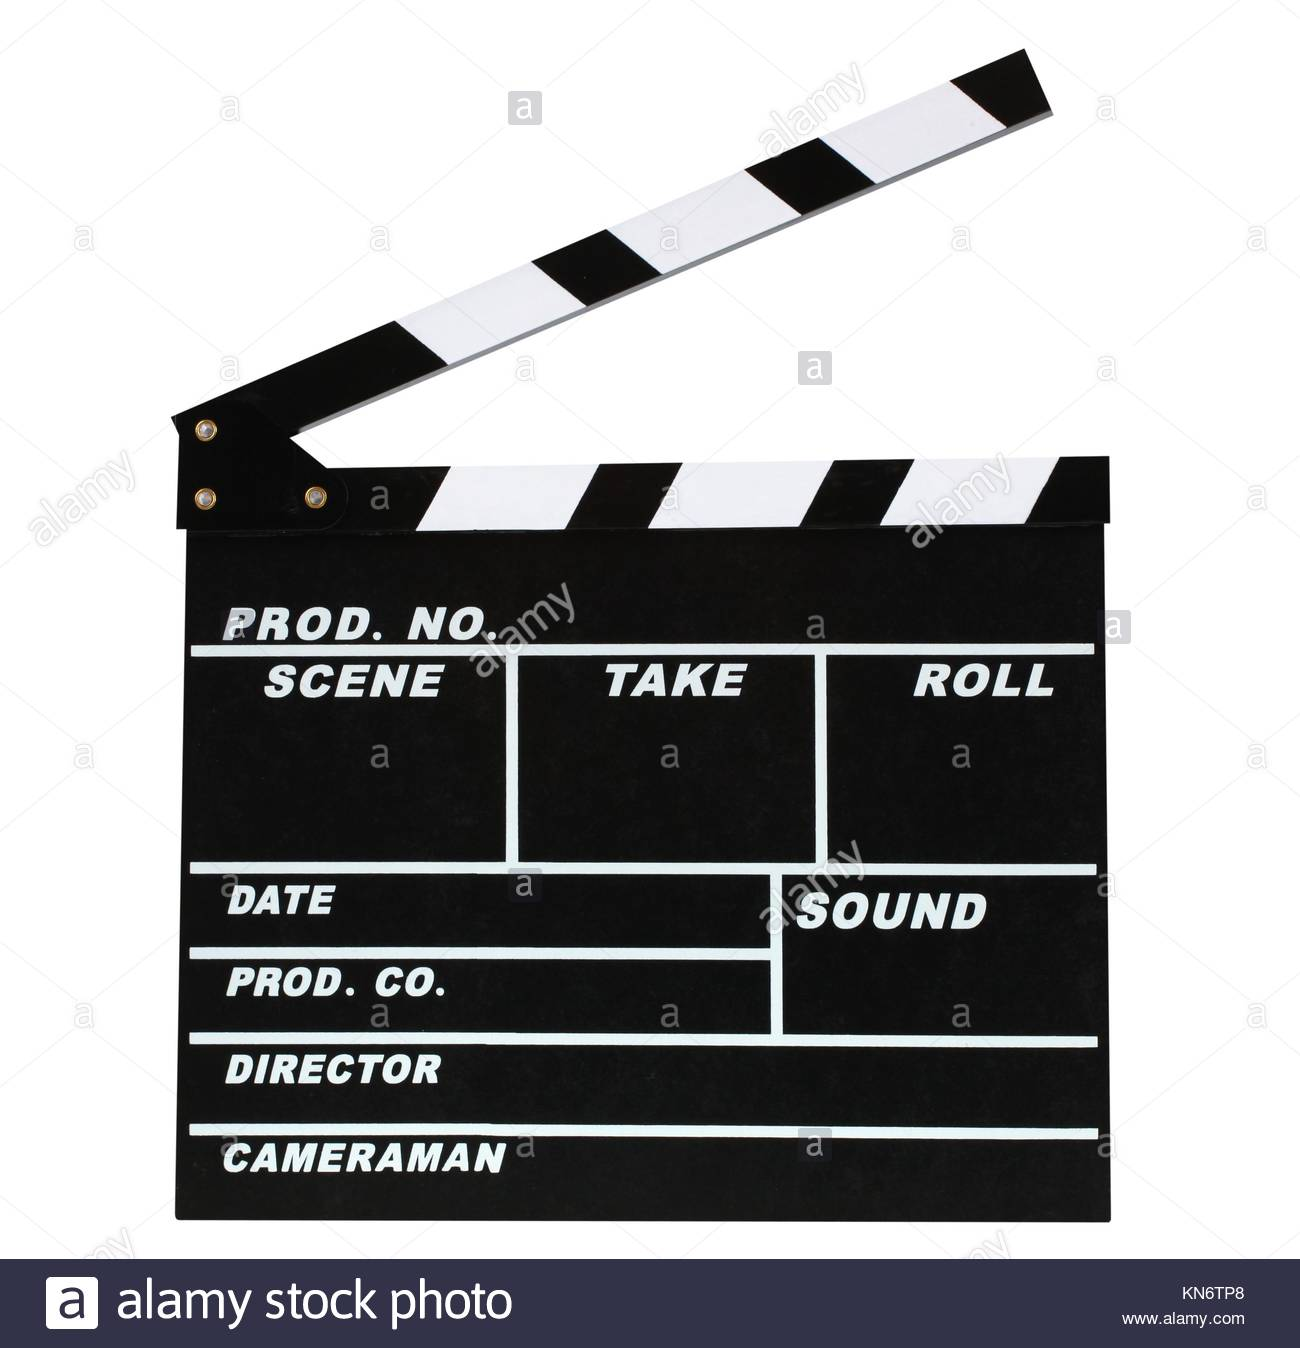 Blank movie production clapper board on white background. - Stock Image